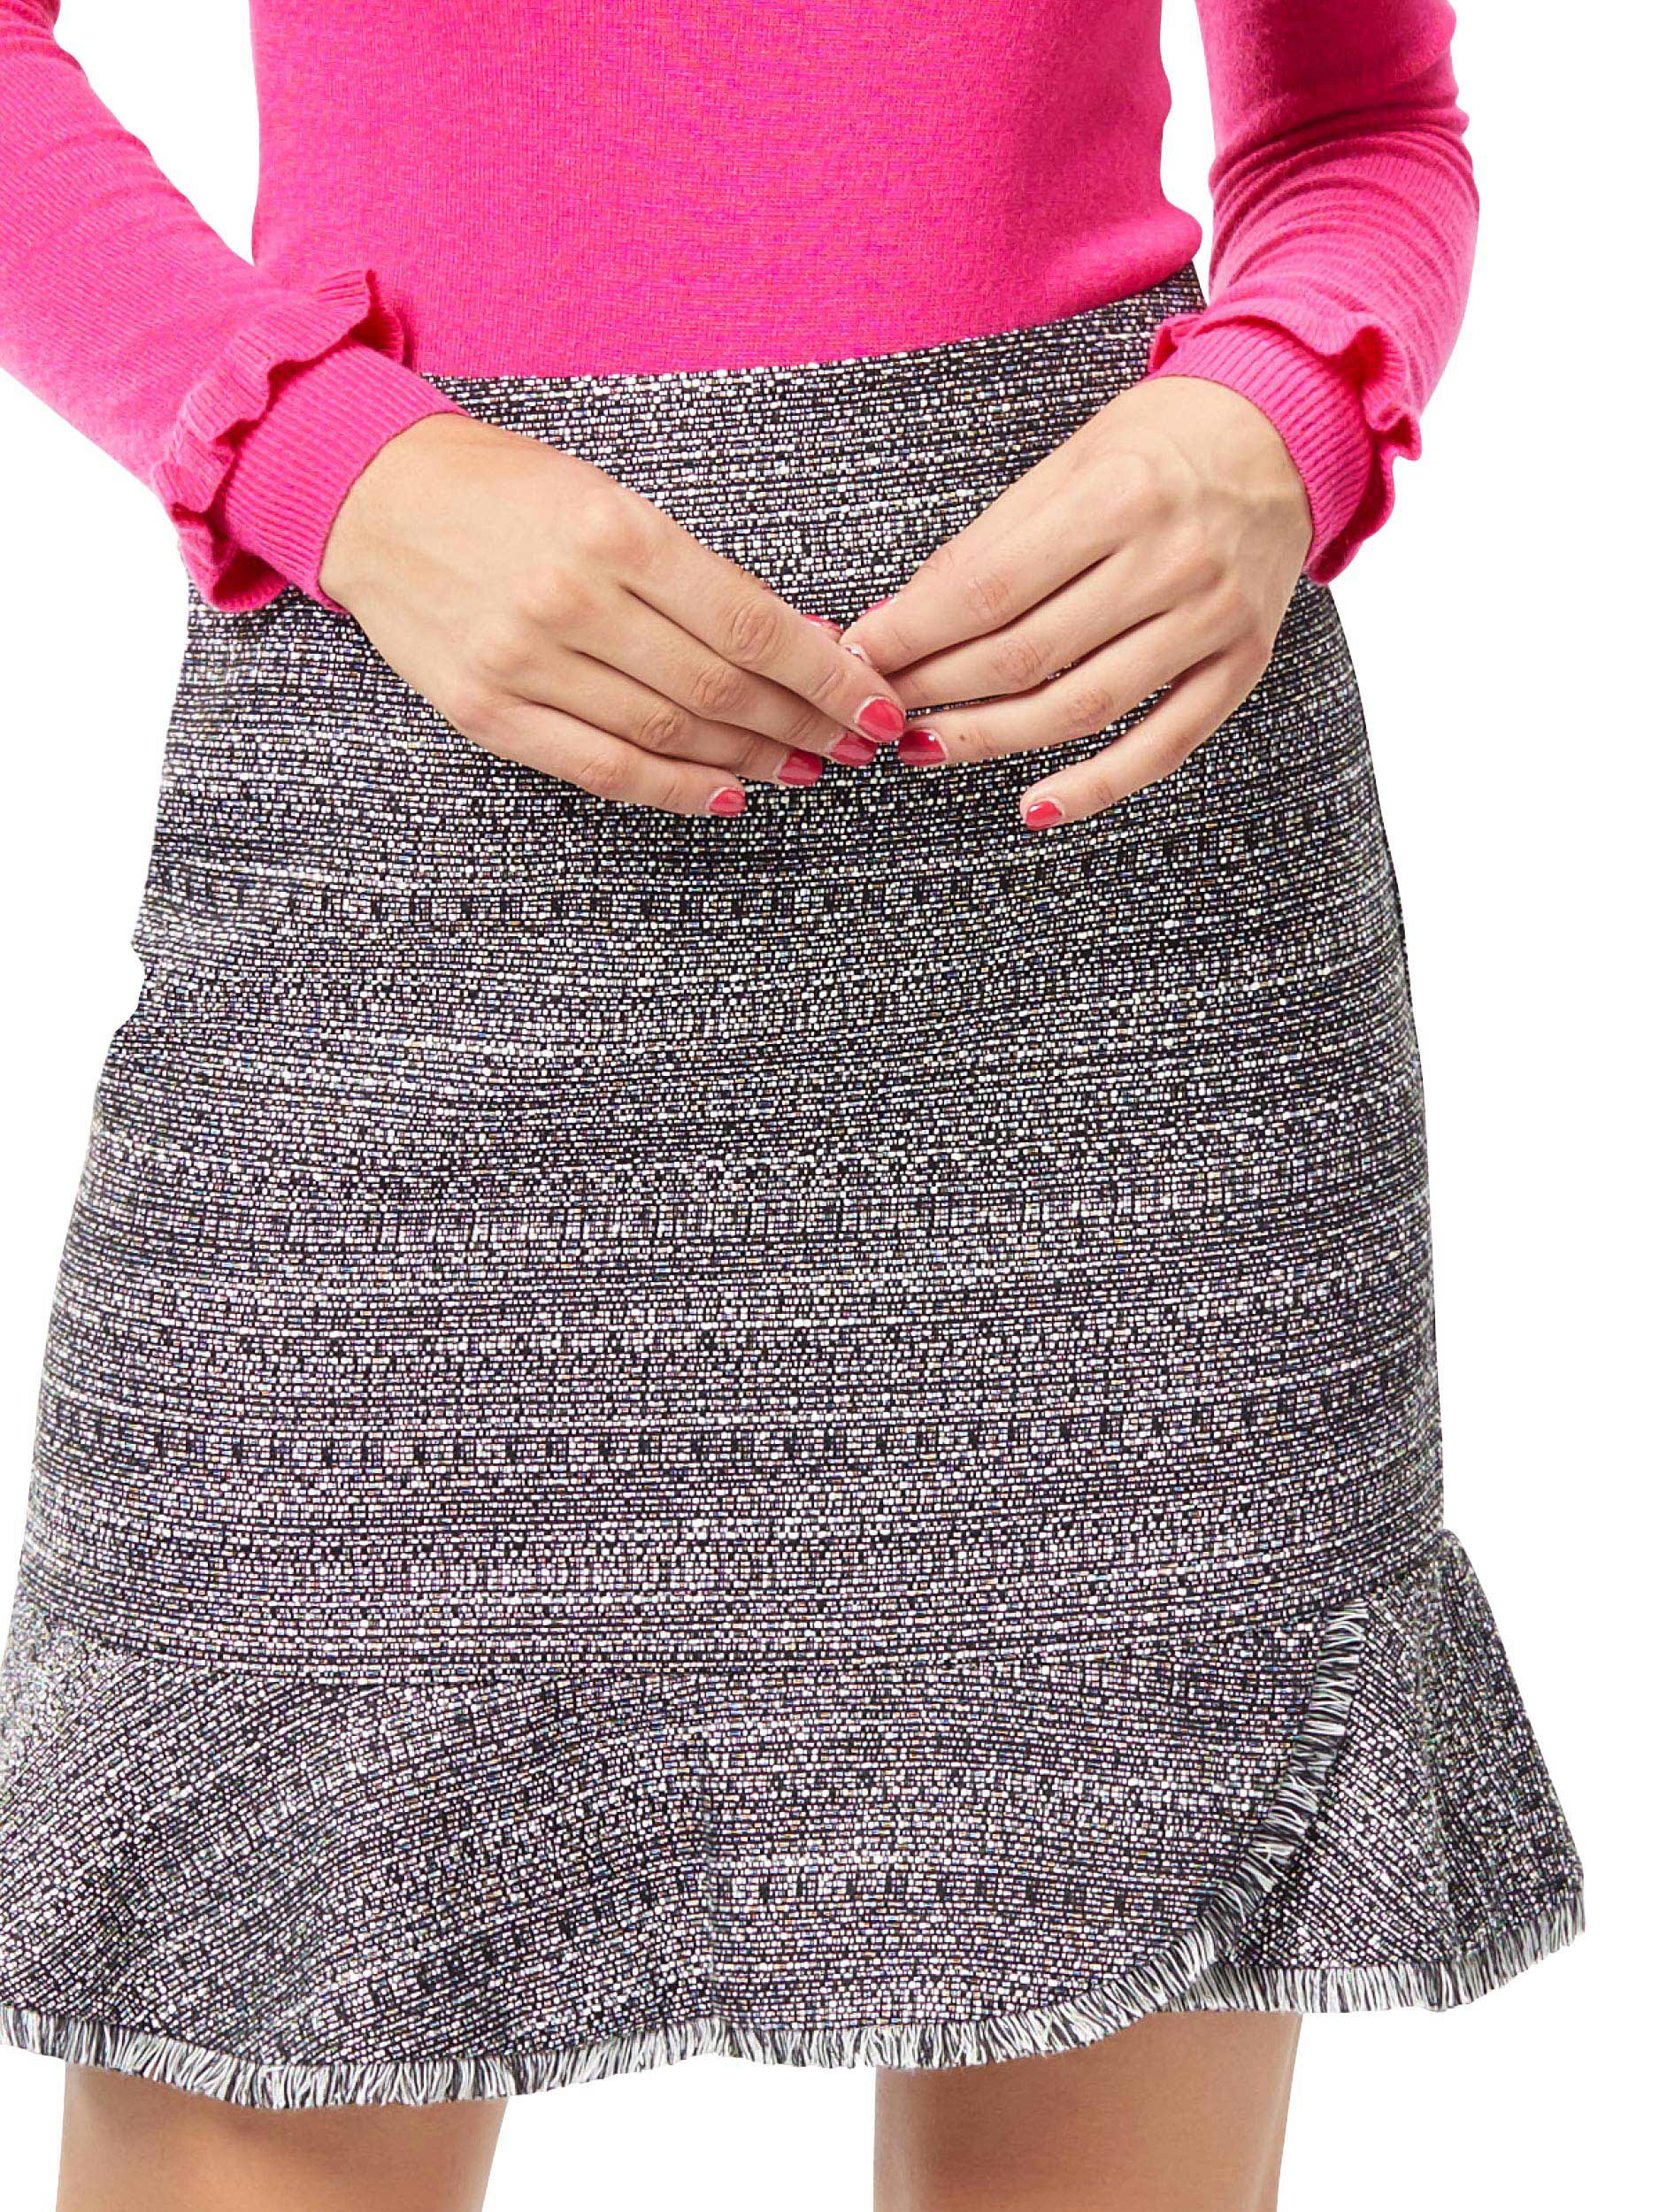 Ciao Bella Skirt